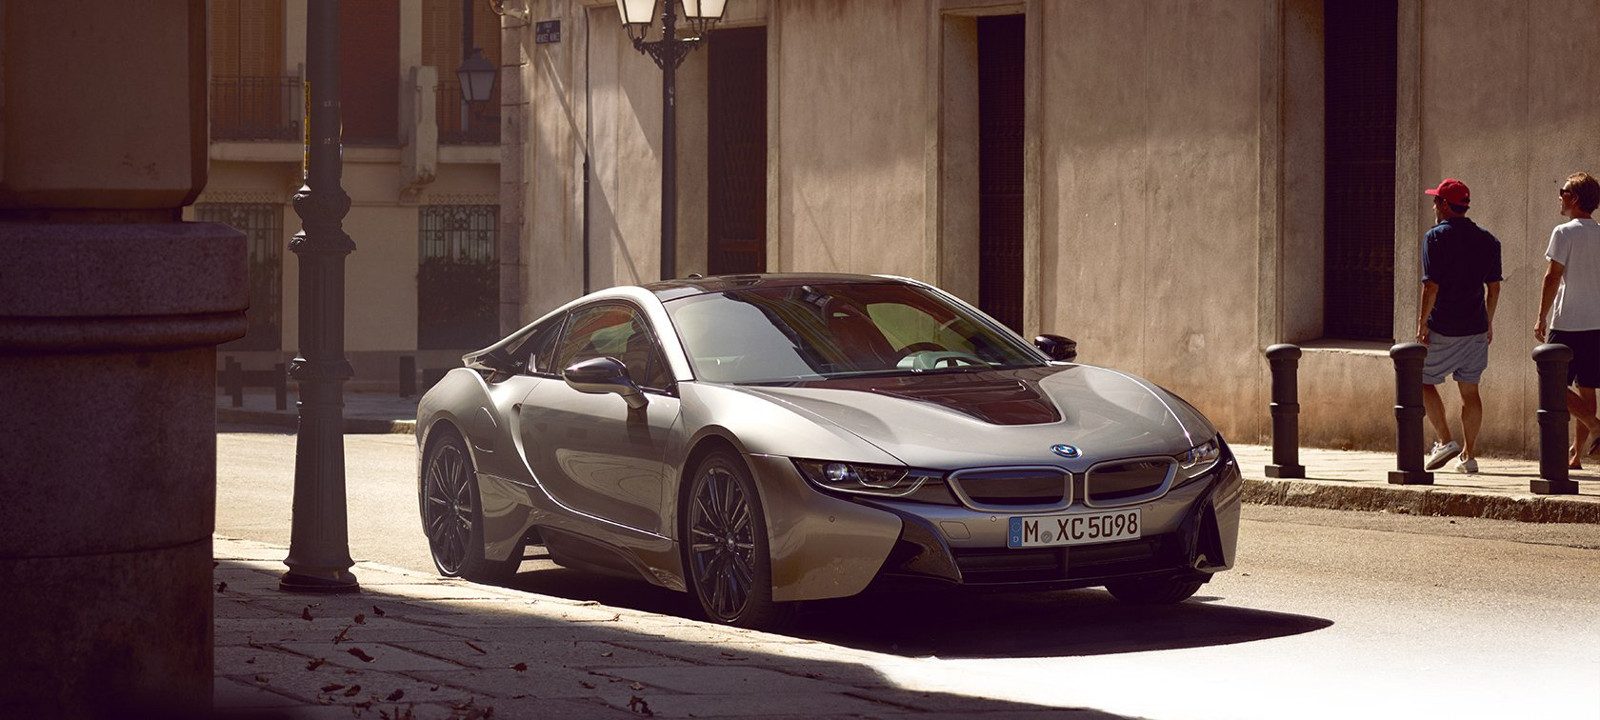 Bmw i8 color plata